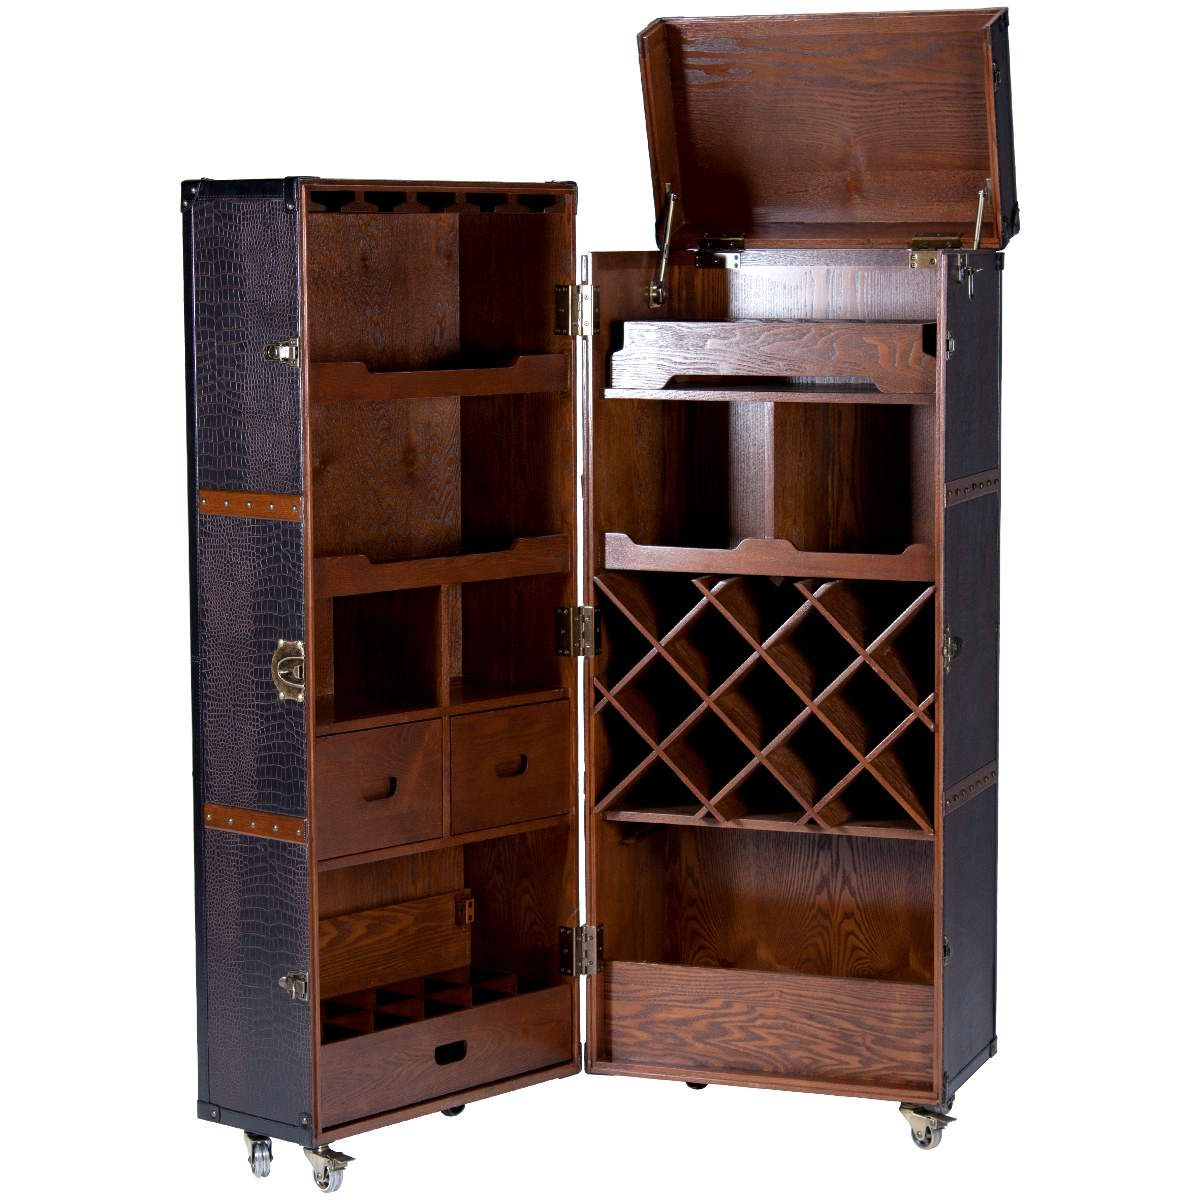 Trunk style mini bar retro drinks cabinet - inspired by Ernest ...